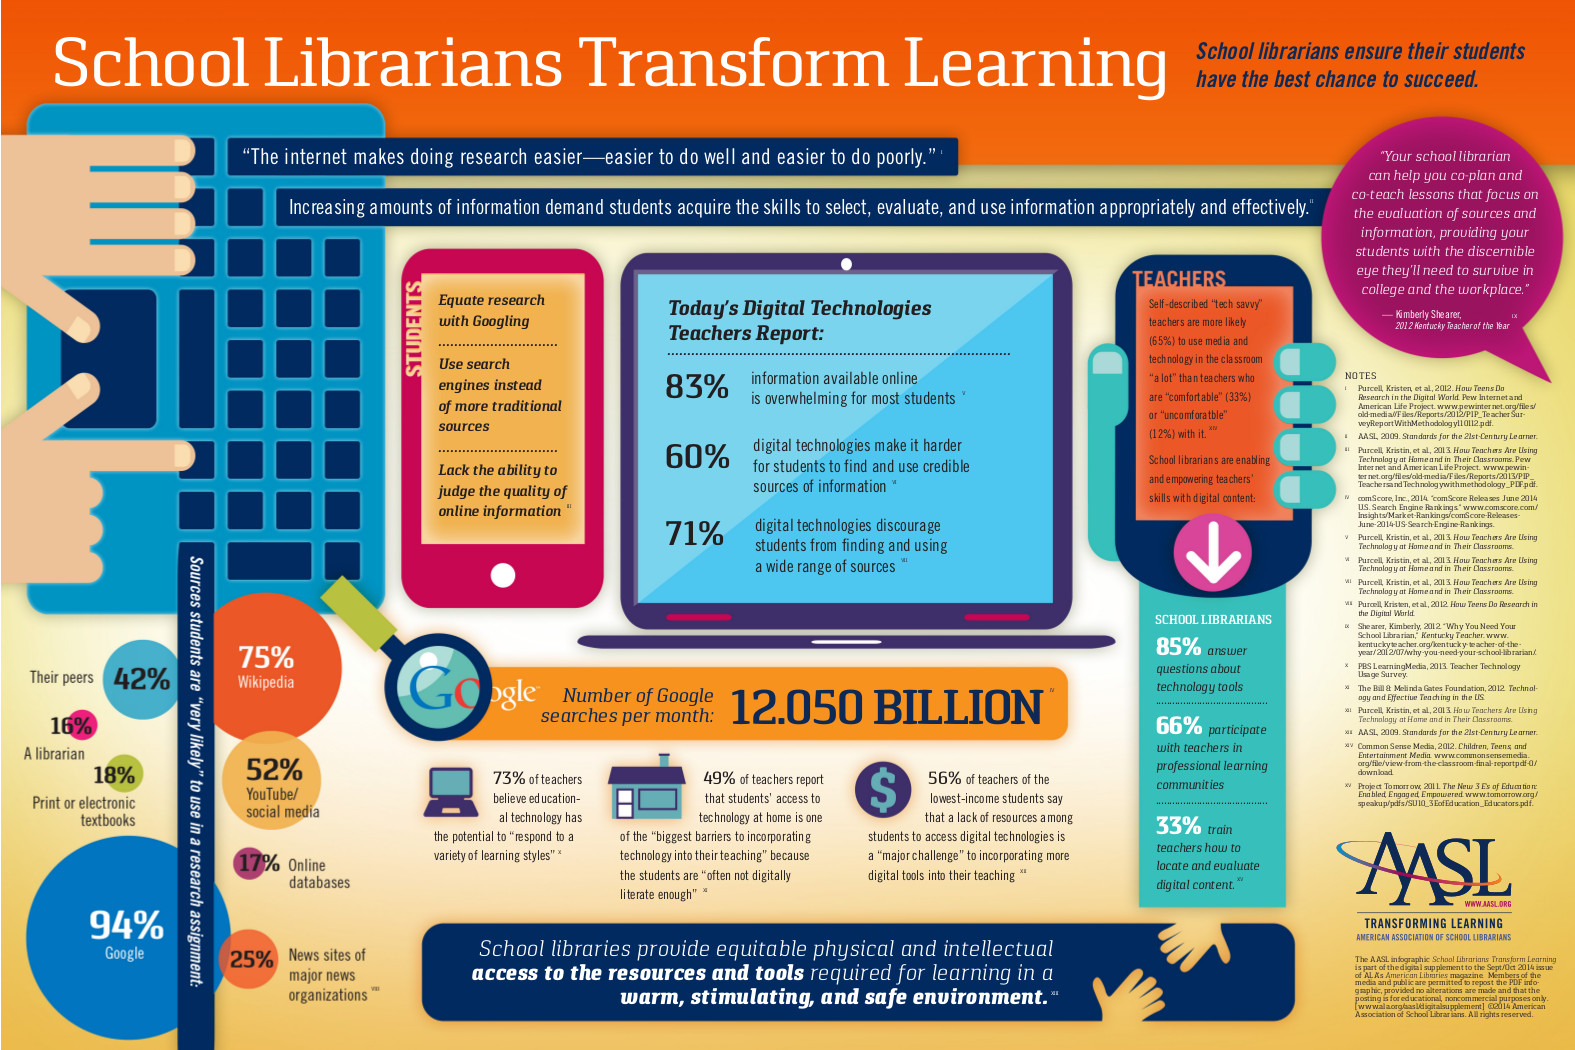 School Librarians Transform Learning Infographic